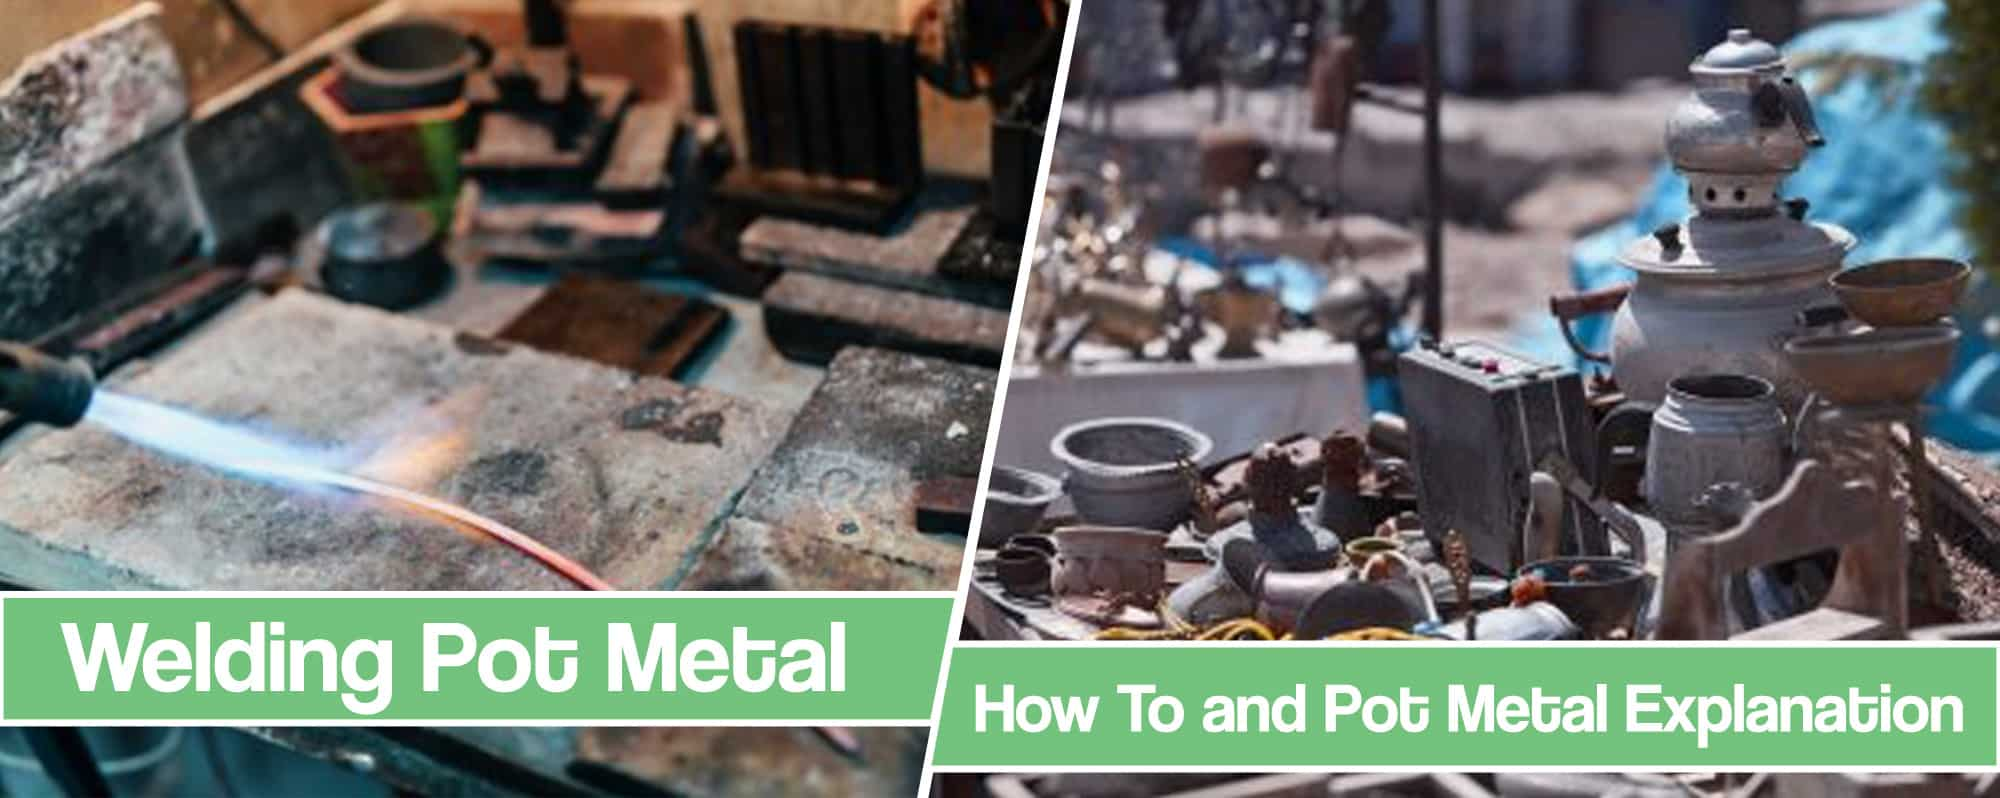 Feature image for Pot Metal Welding article